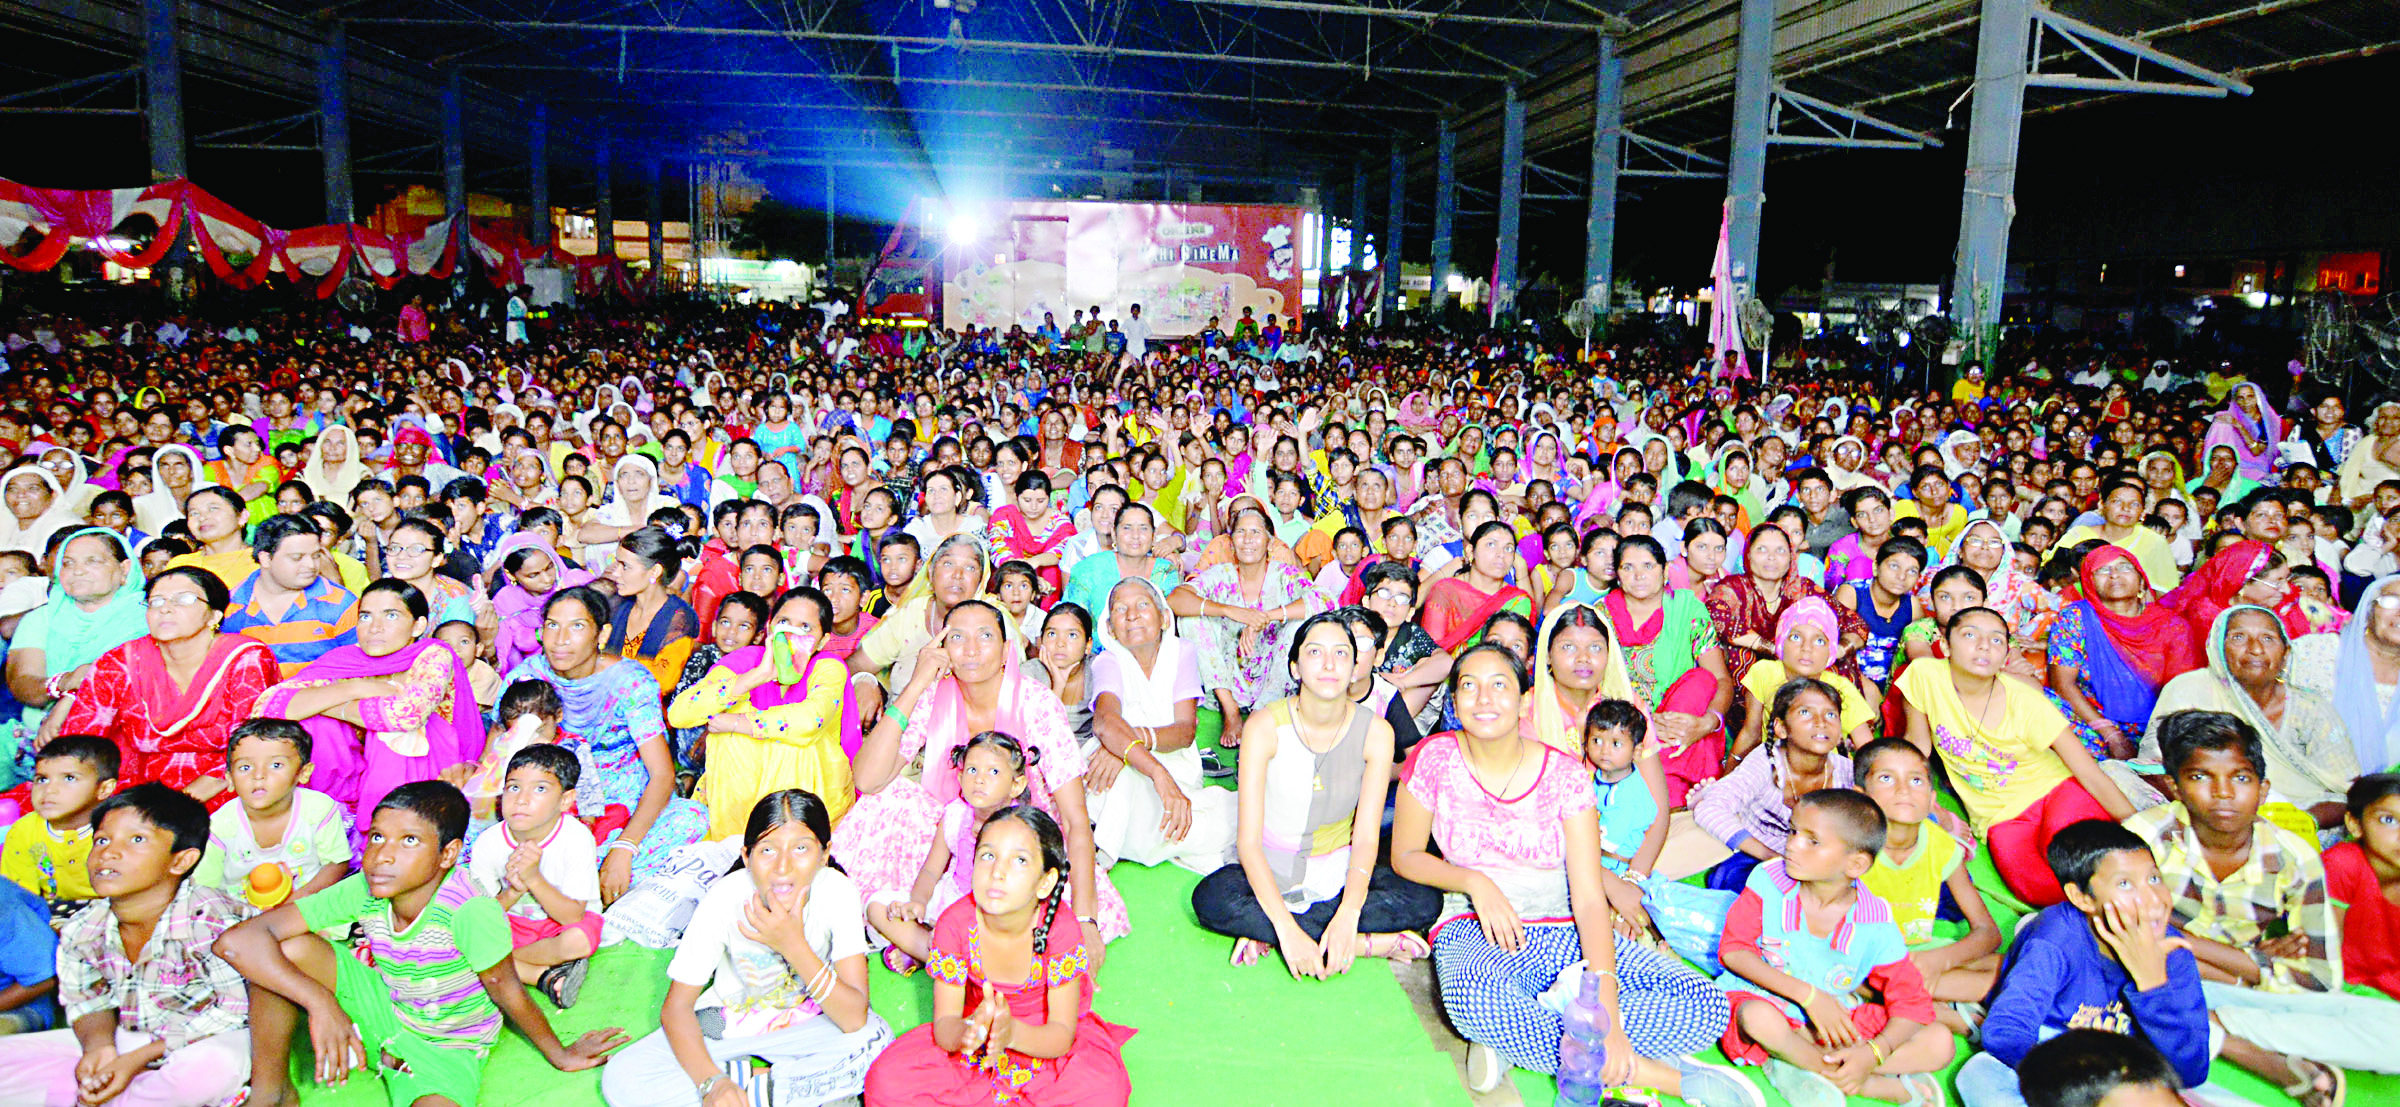 Srisa, 65750 Audiences. Movie 'Jatu Engineer', Dr MSG